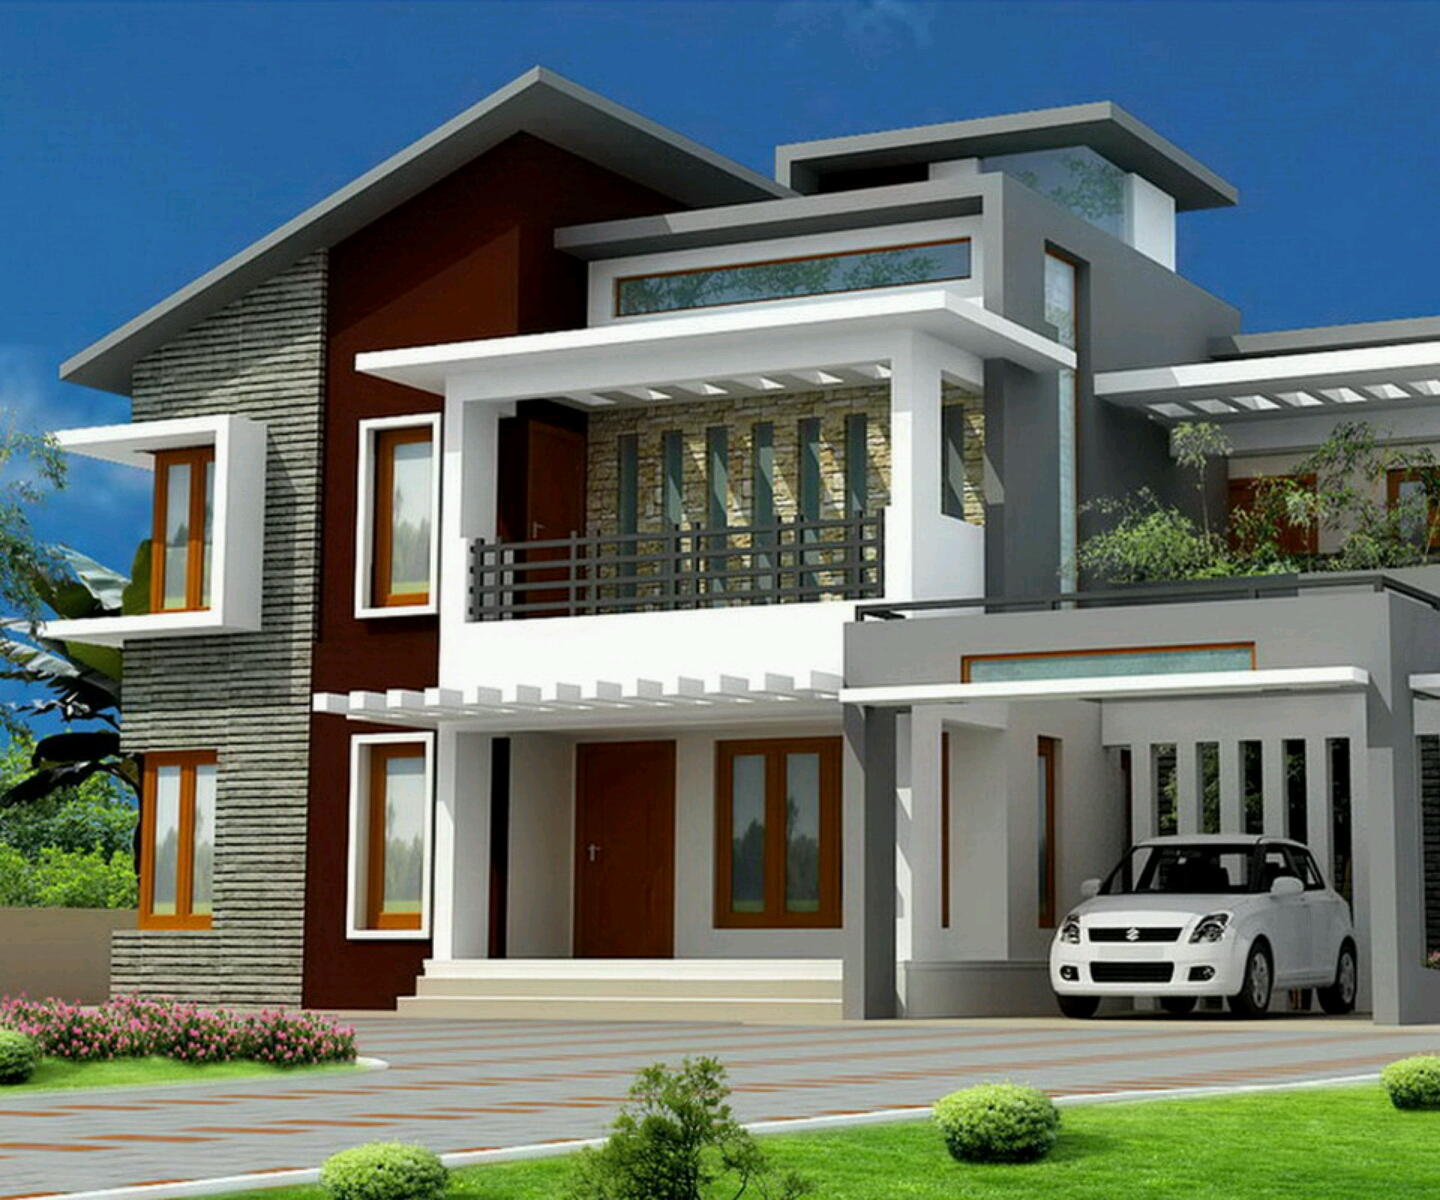 Modern bungalows exterior designs views.